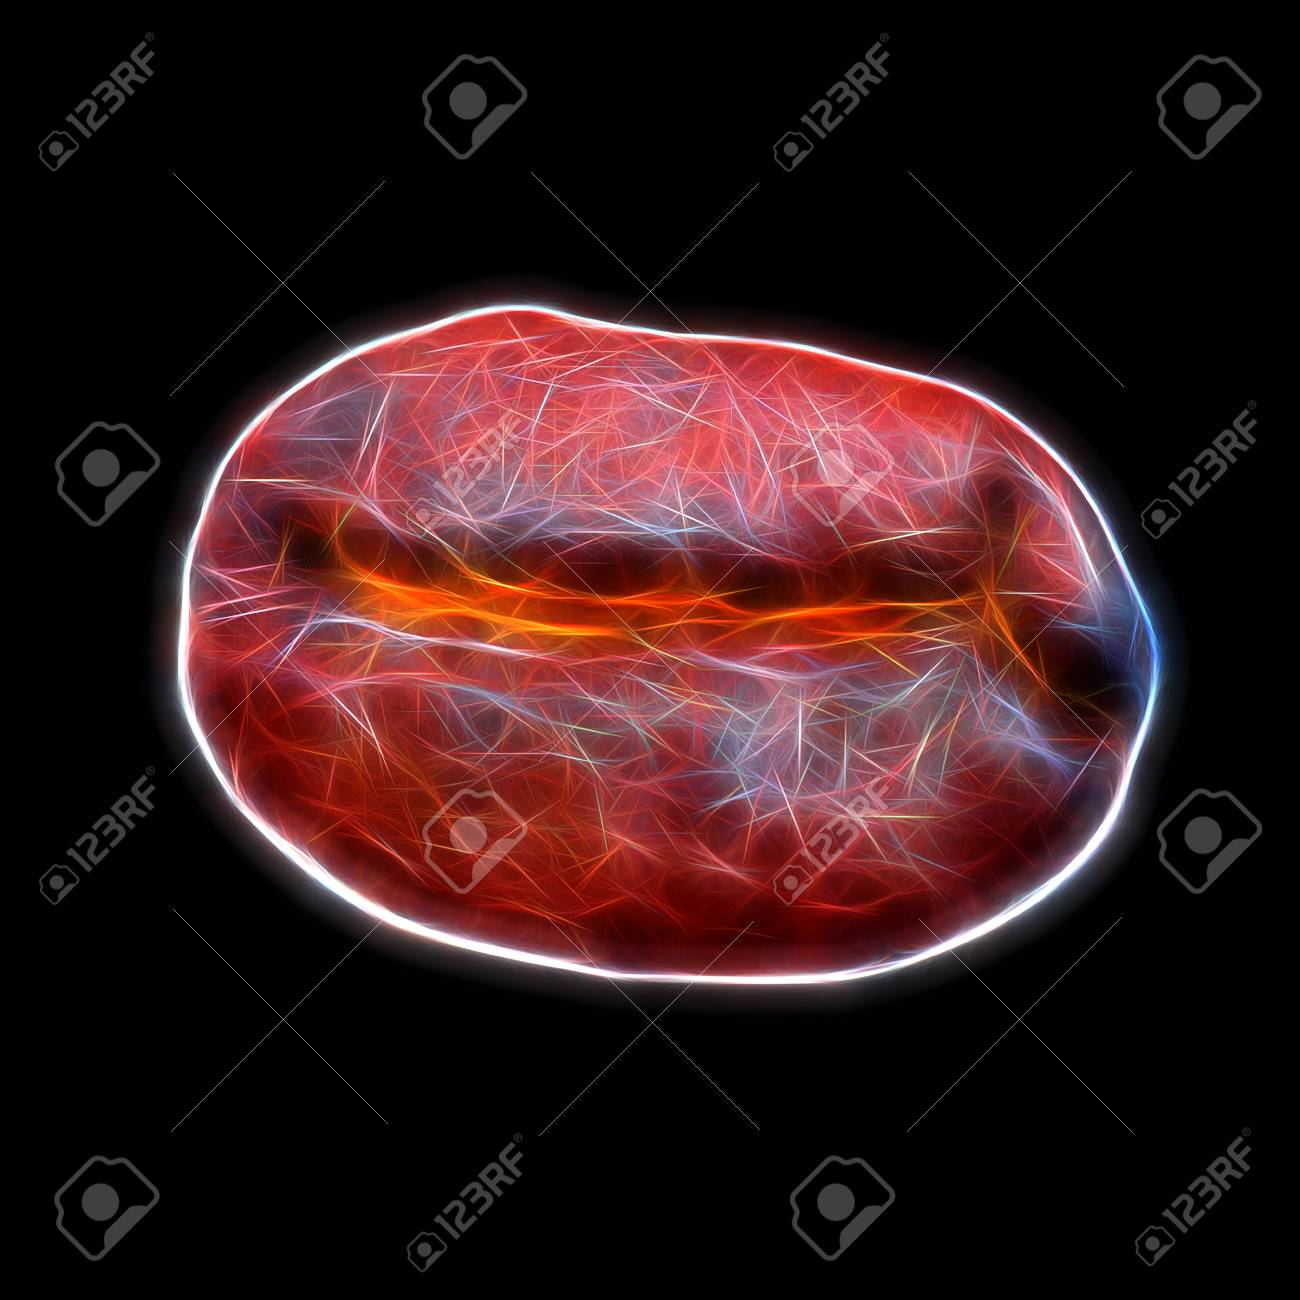 Glow Image Of Roasted Coffee Bean Stock Photo, Picture And Royalty ...